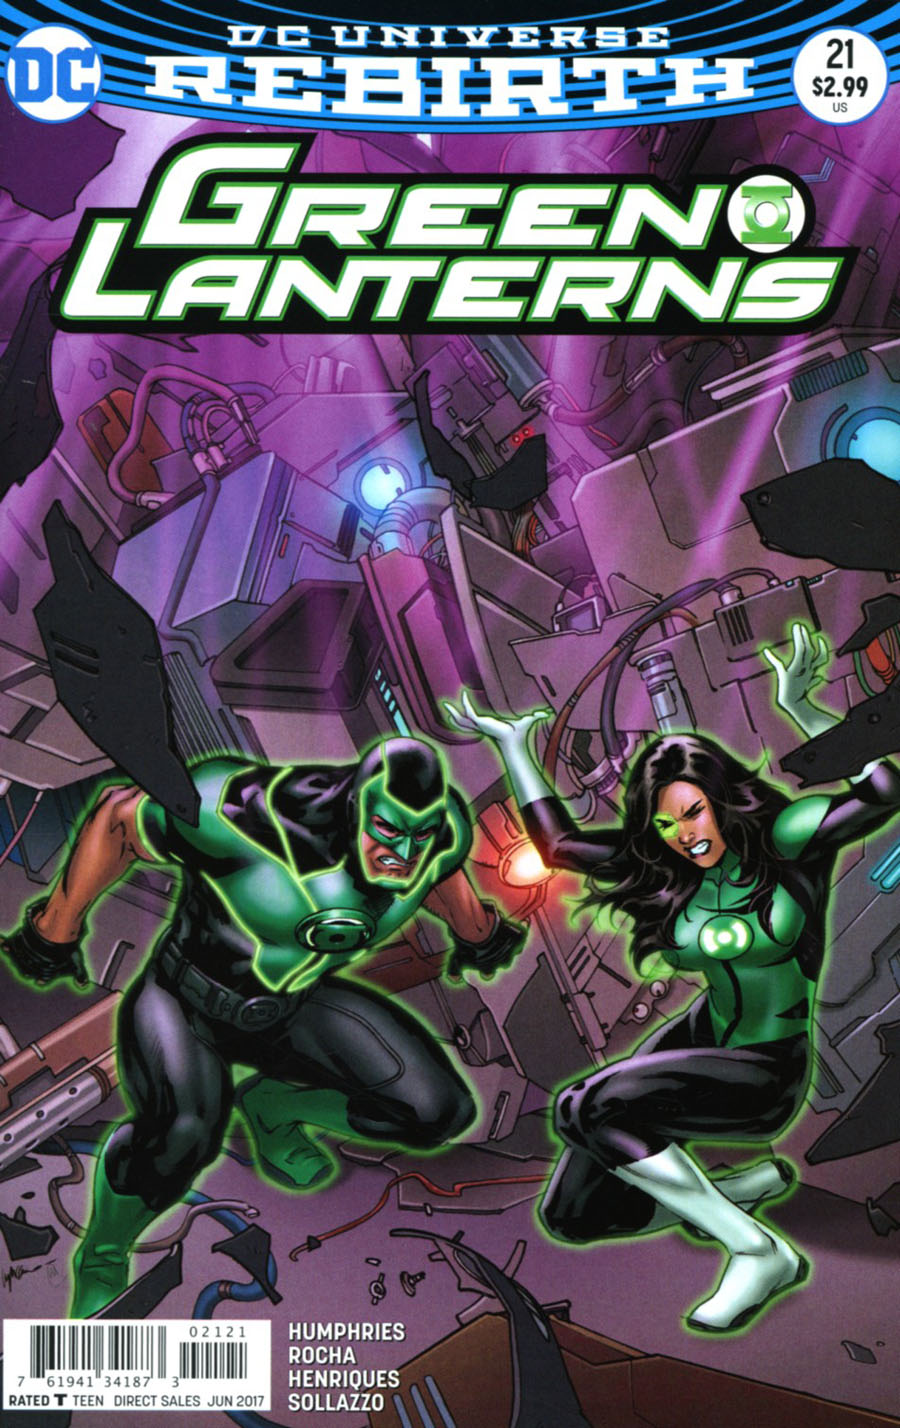 Green Lanterns #21 Cover B Variant Emanuela Lupacchino Cover